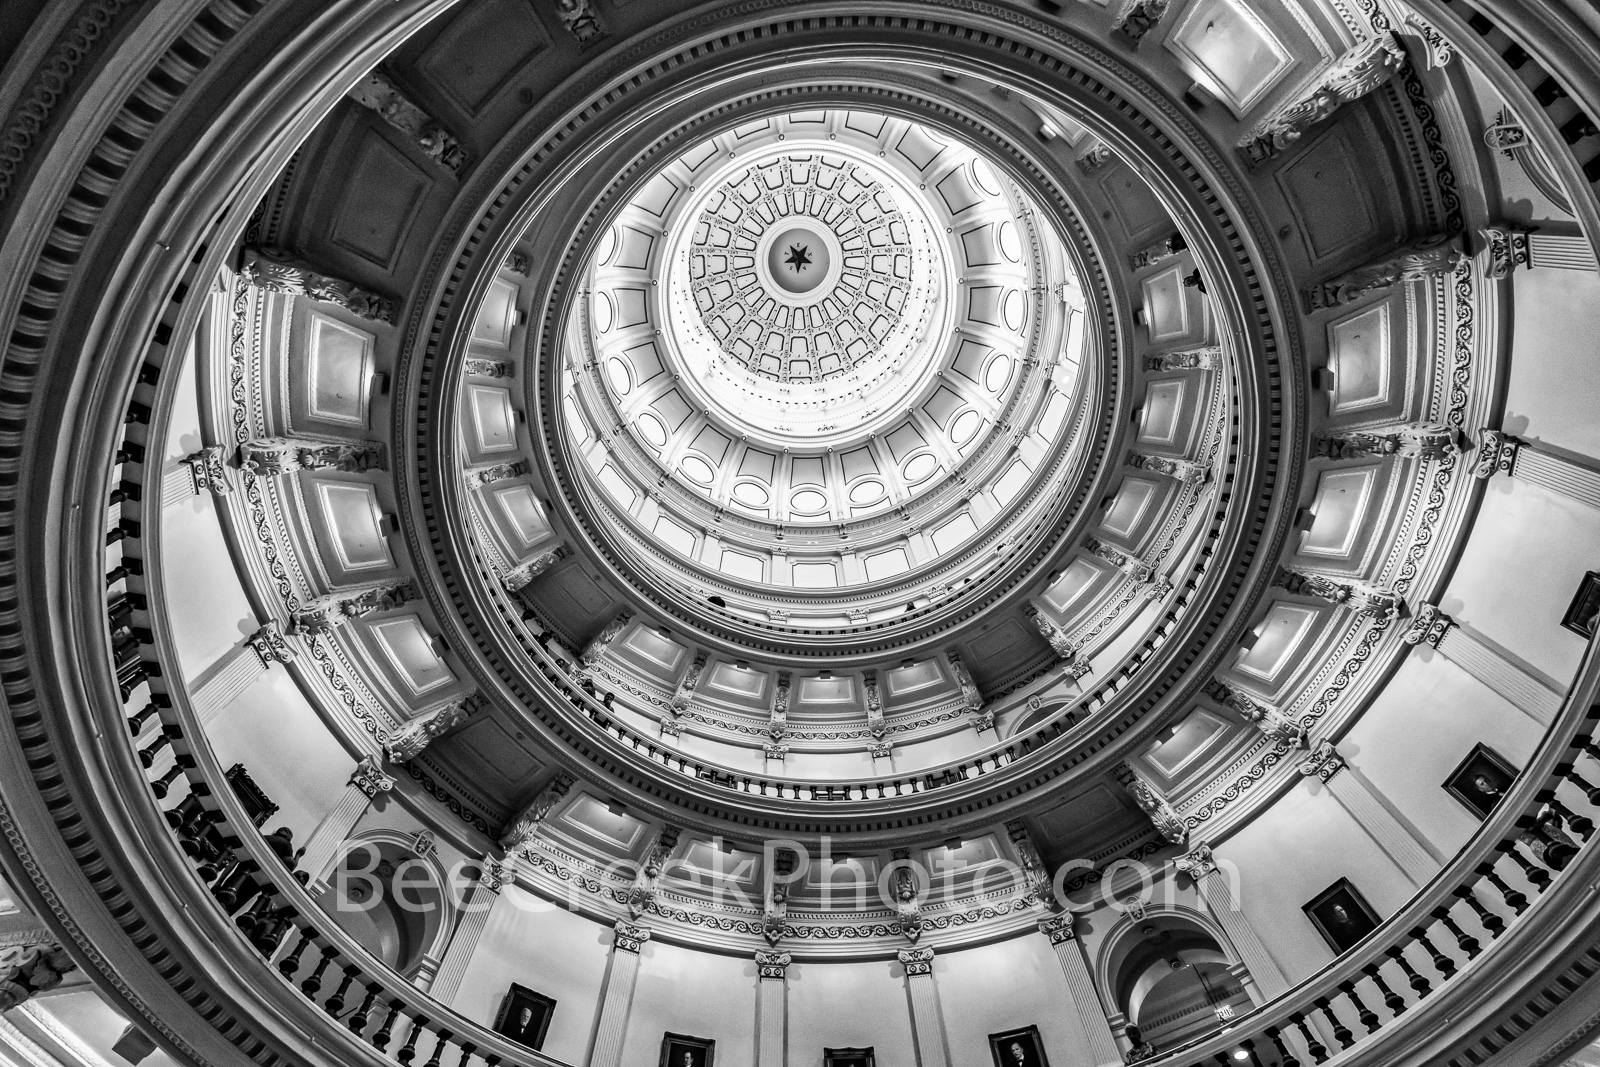 Texas Capitol Dome Ceiling BW 2 - The interior dome looks more like a ceiling topped with the 8-foot wide star, surrounded by...